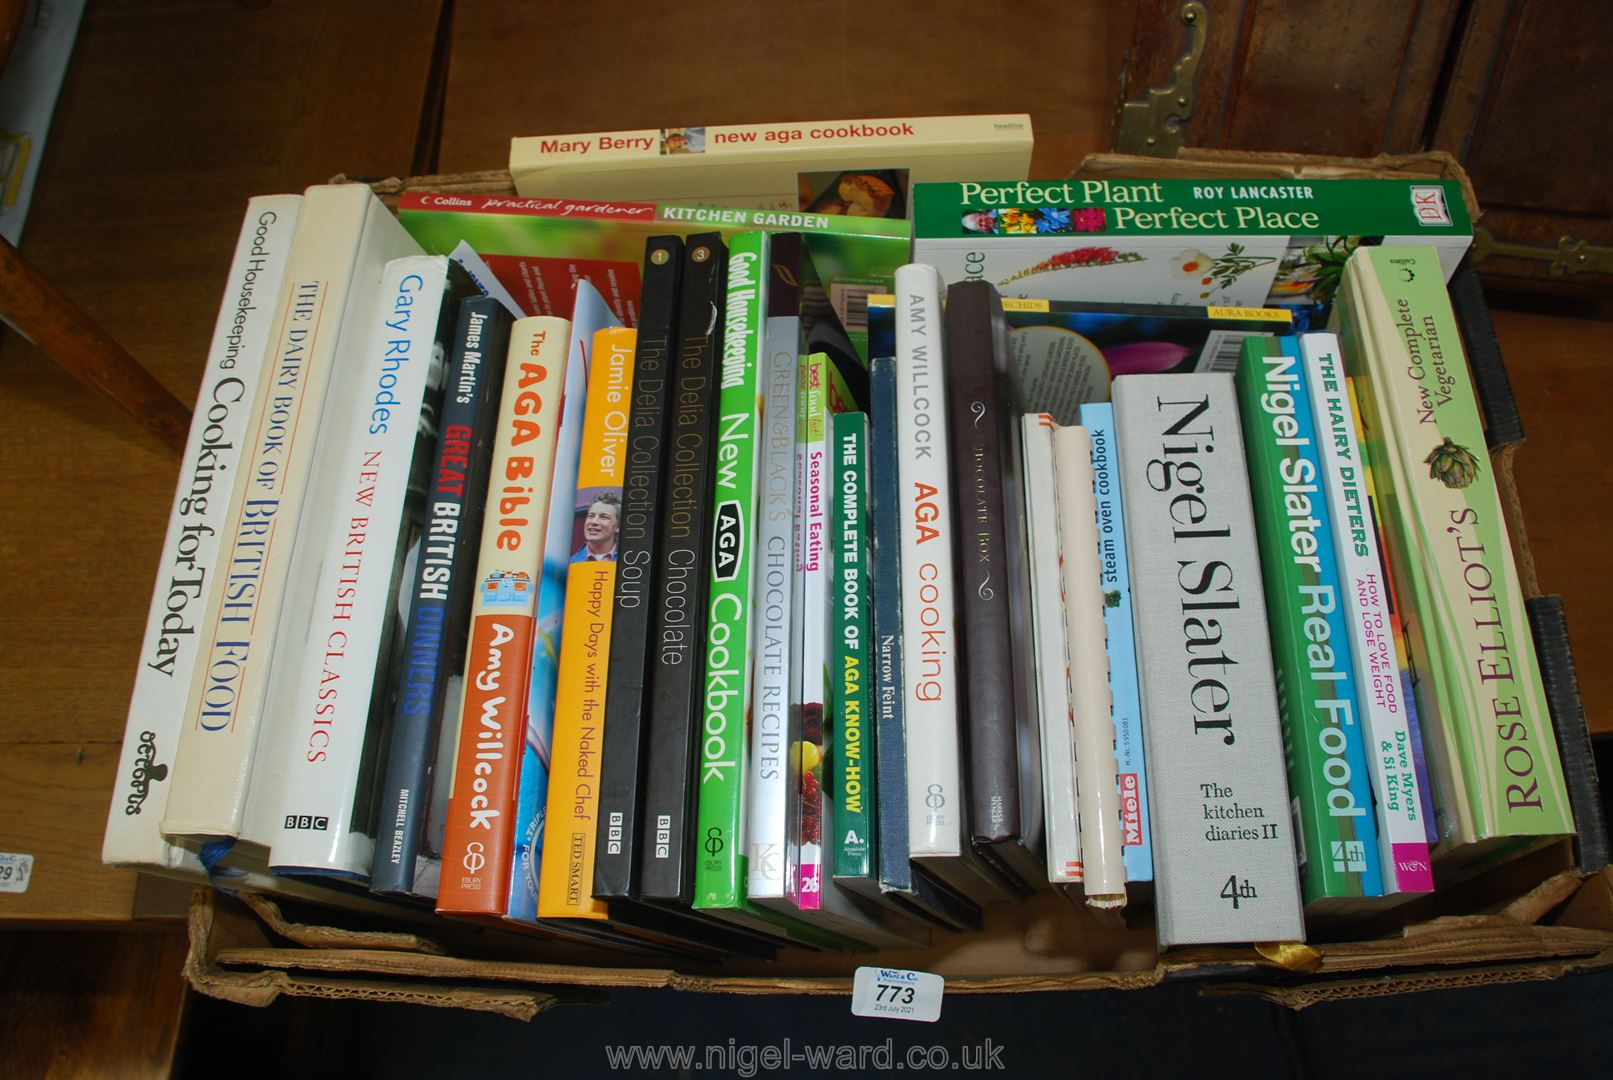 Quantity of cookery and gardening books.